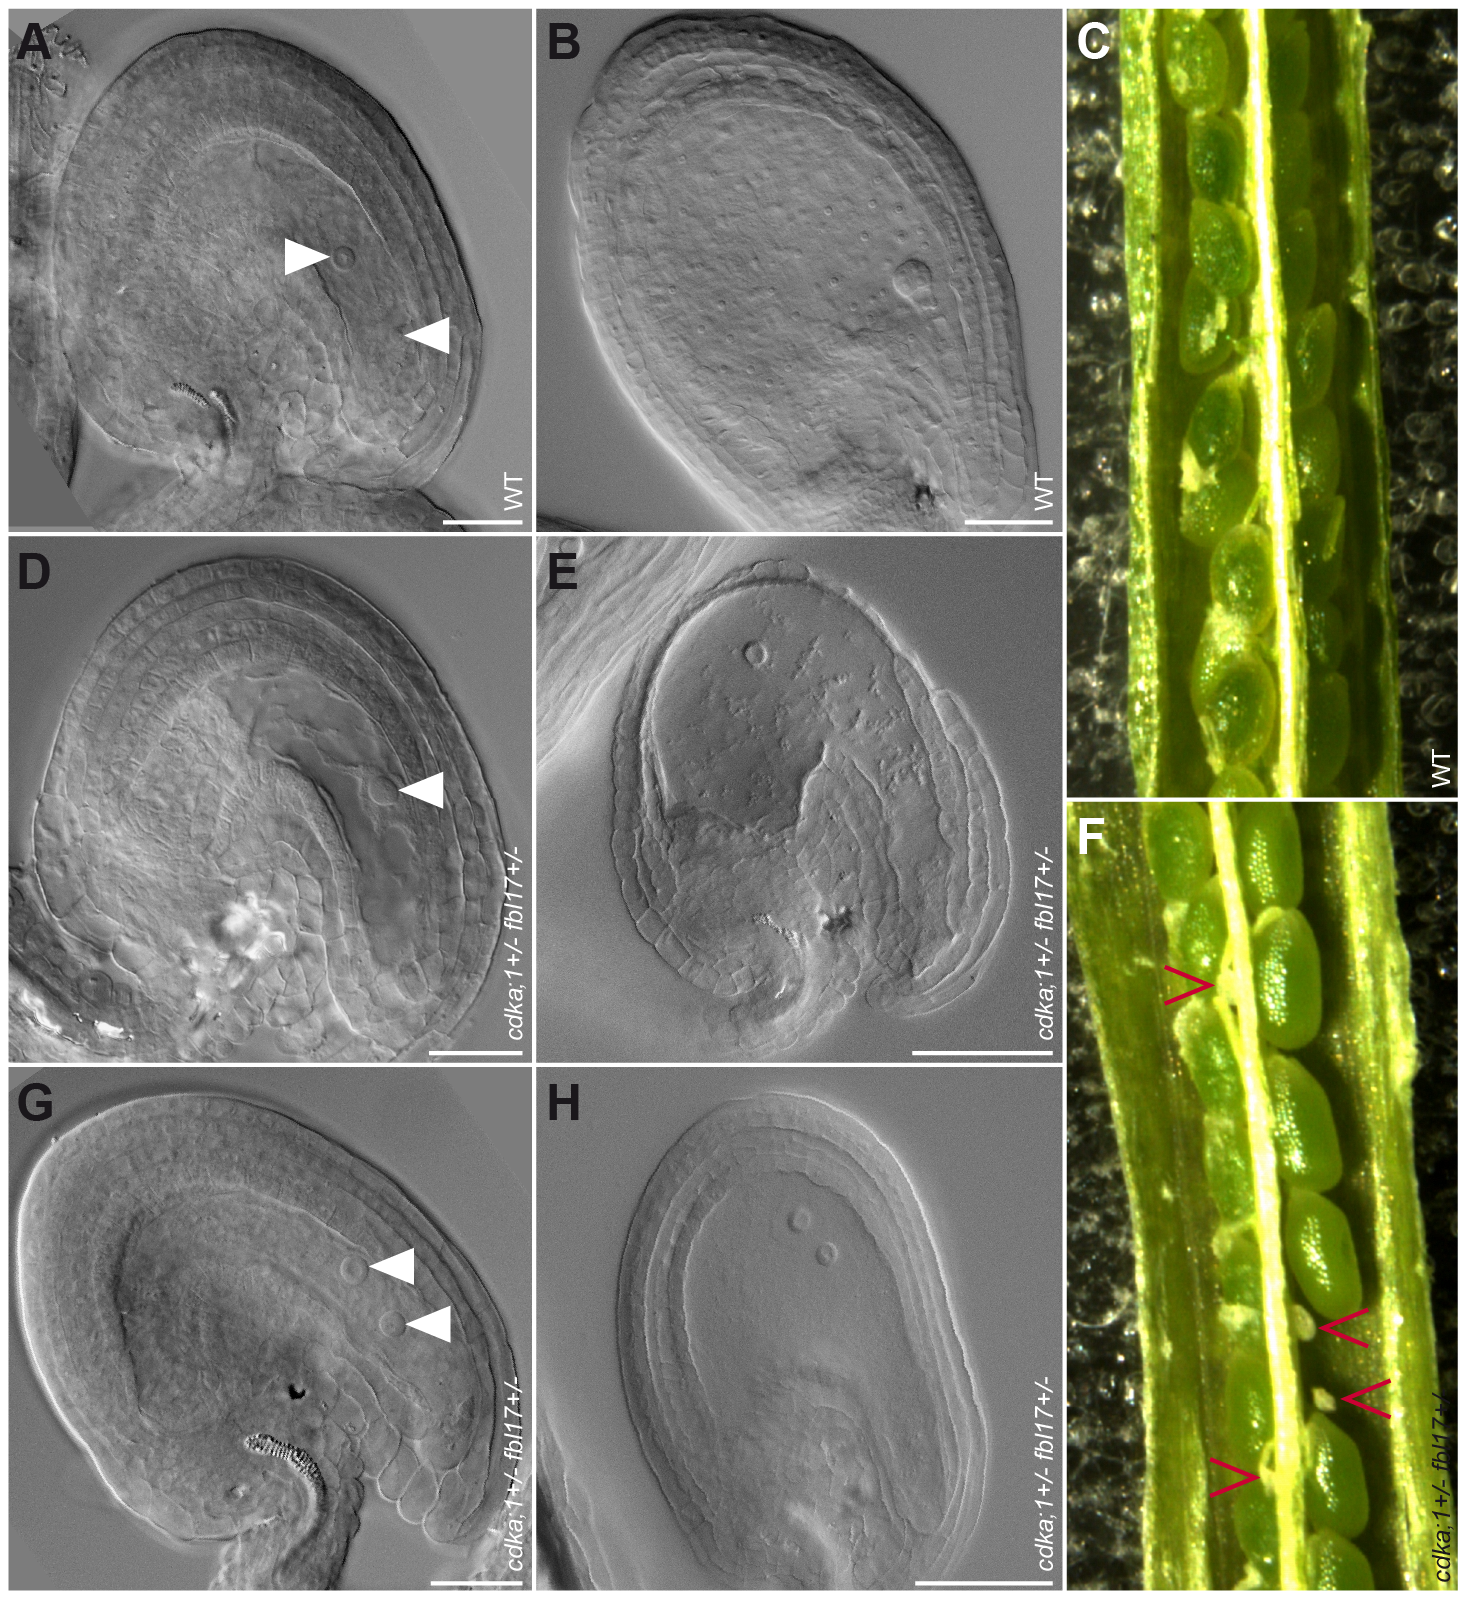 Mature ovules and seed development in wild type and <i>cdka;1 fbl17</i> double mutant.